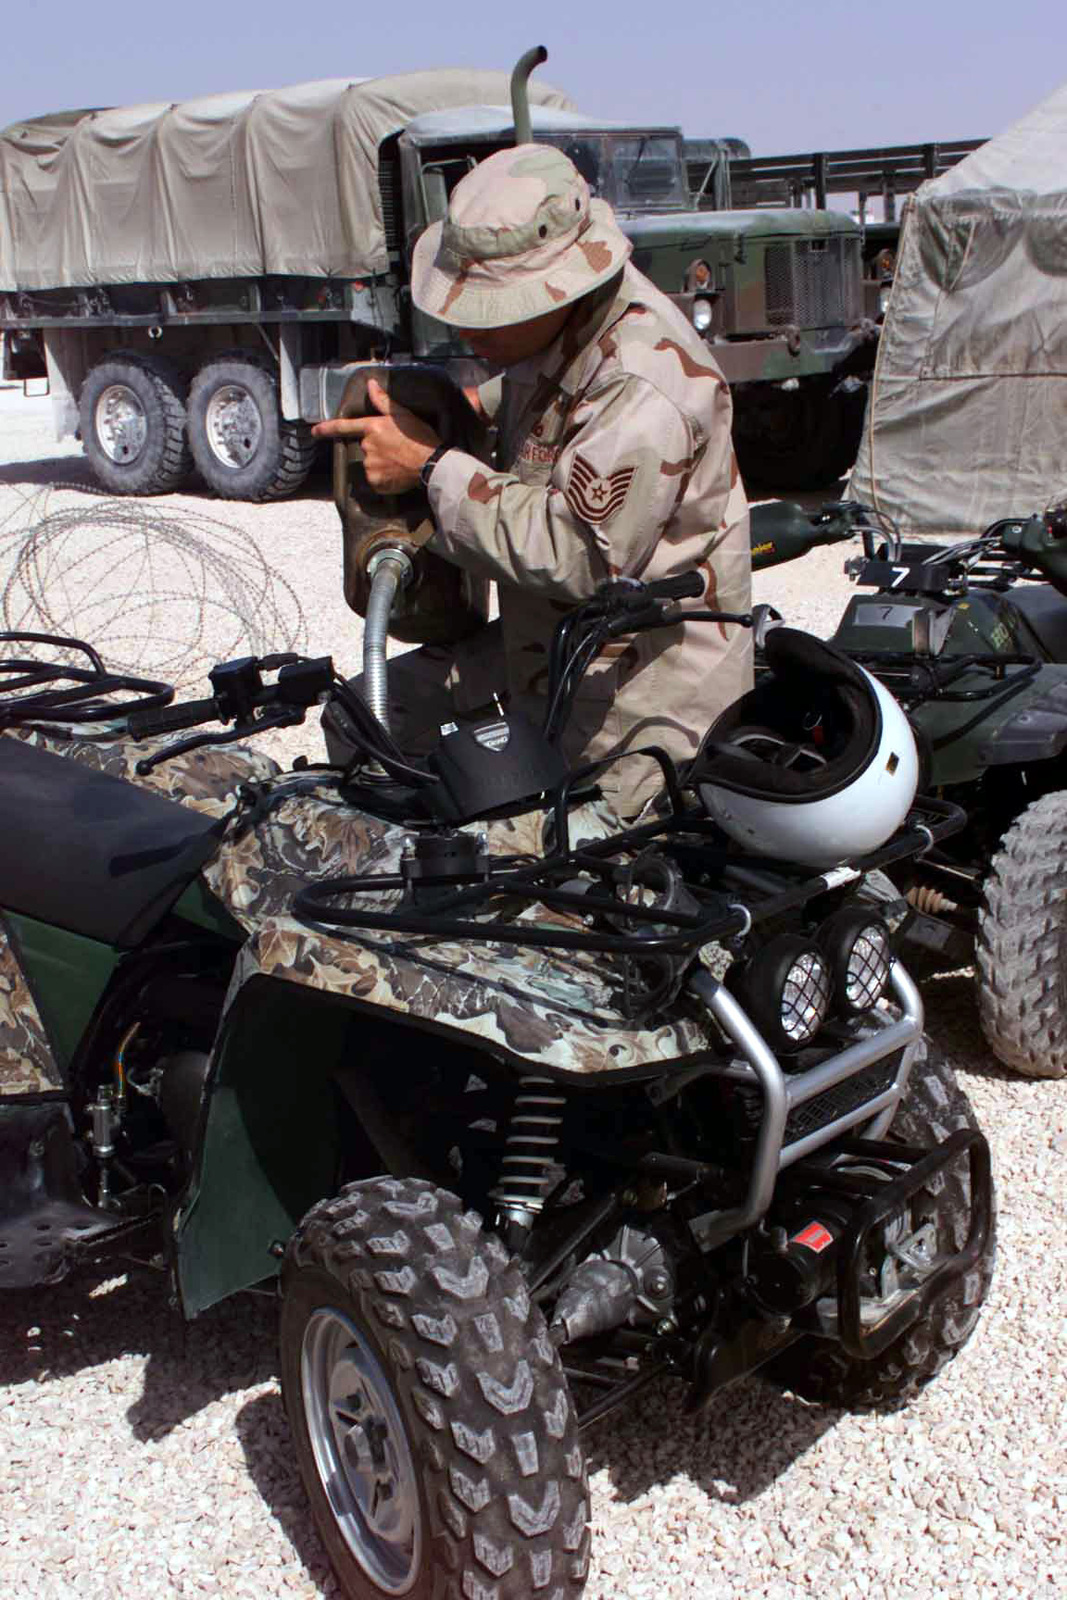 US Air Force (USAF) Technical Sergeant (TSGT) Ronzil D. Starcher, 379th Expeditionary Security Forces Squadron (ESFS), refuels an All Terrain Vehicle (ATV) in preparation for an ATV class conducted at Al Udeid Air Base (AB), Qatar, during Operation ENDURING FREEDOM